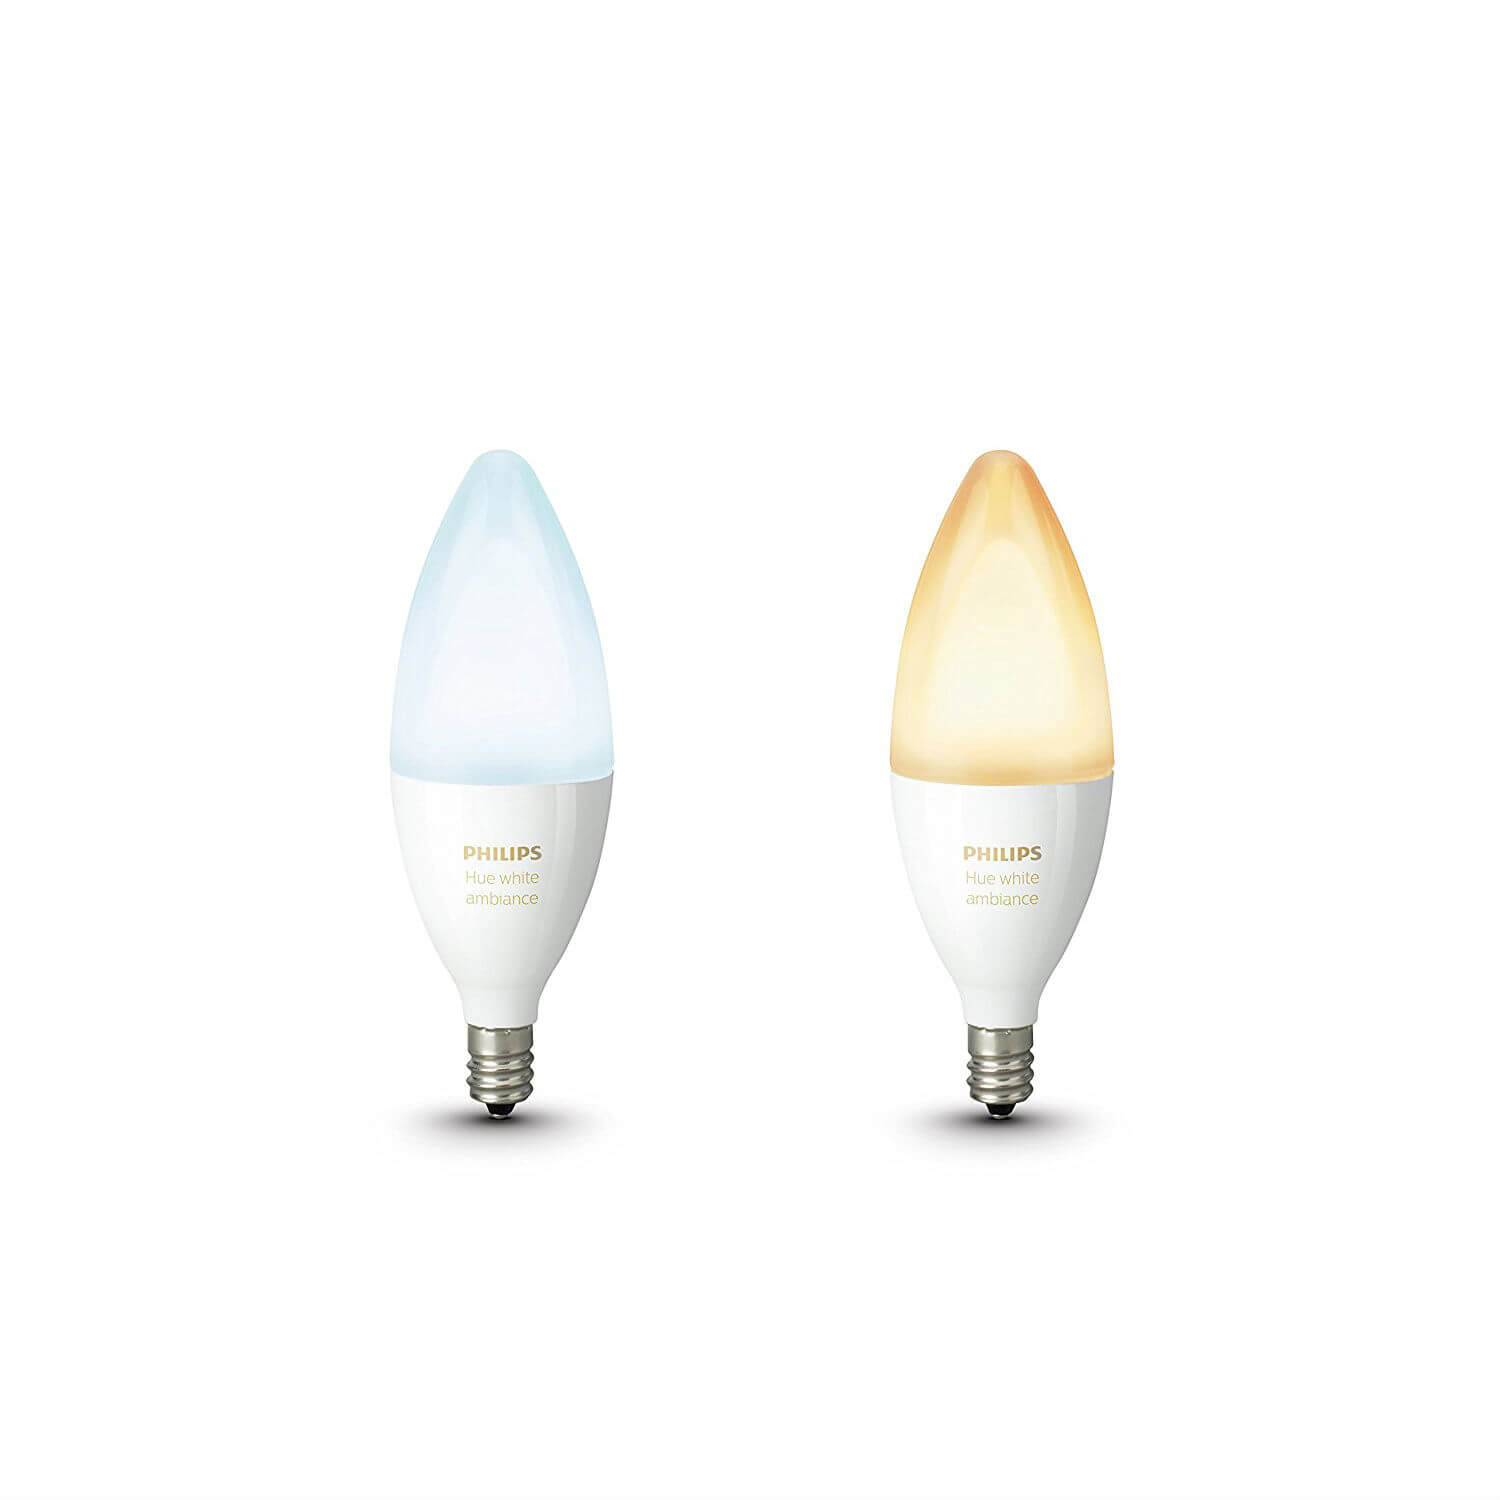 Philips Hue White Ambiance 6W E14 - 2 Pack